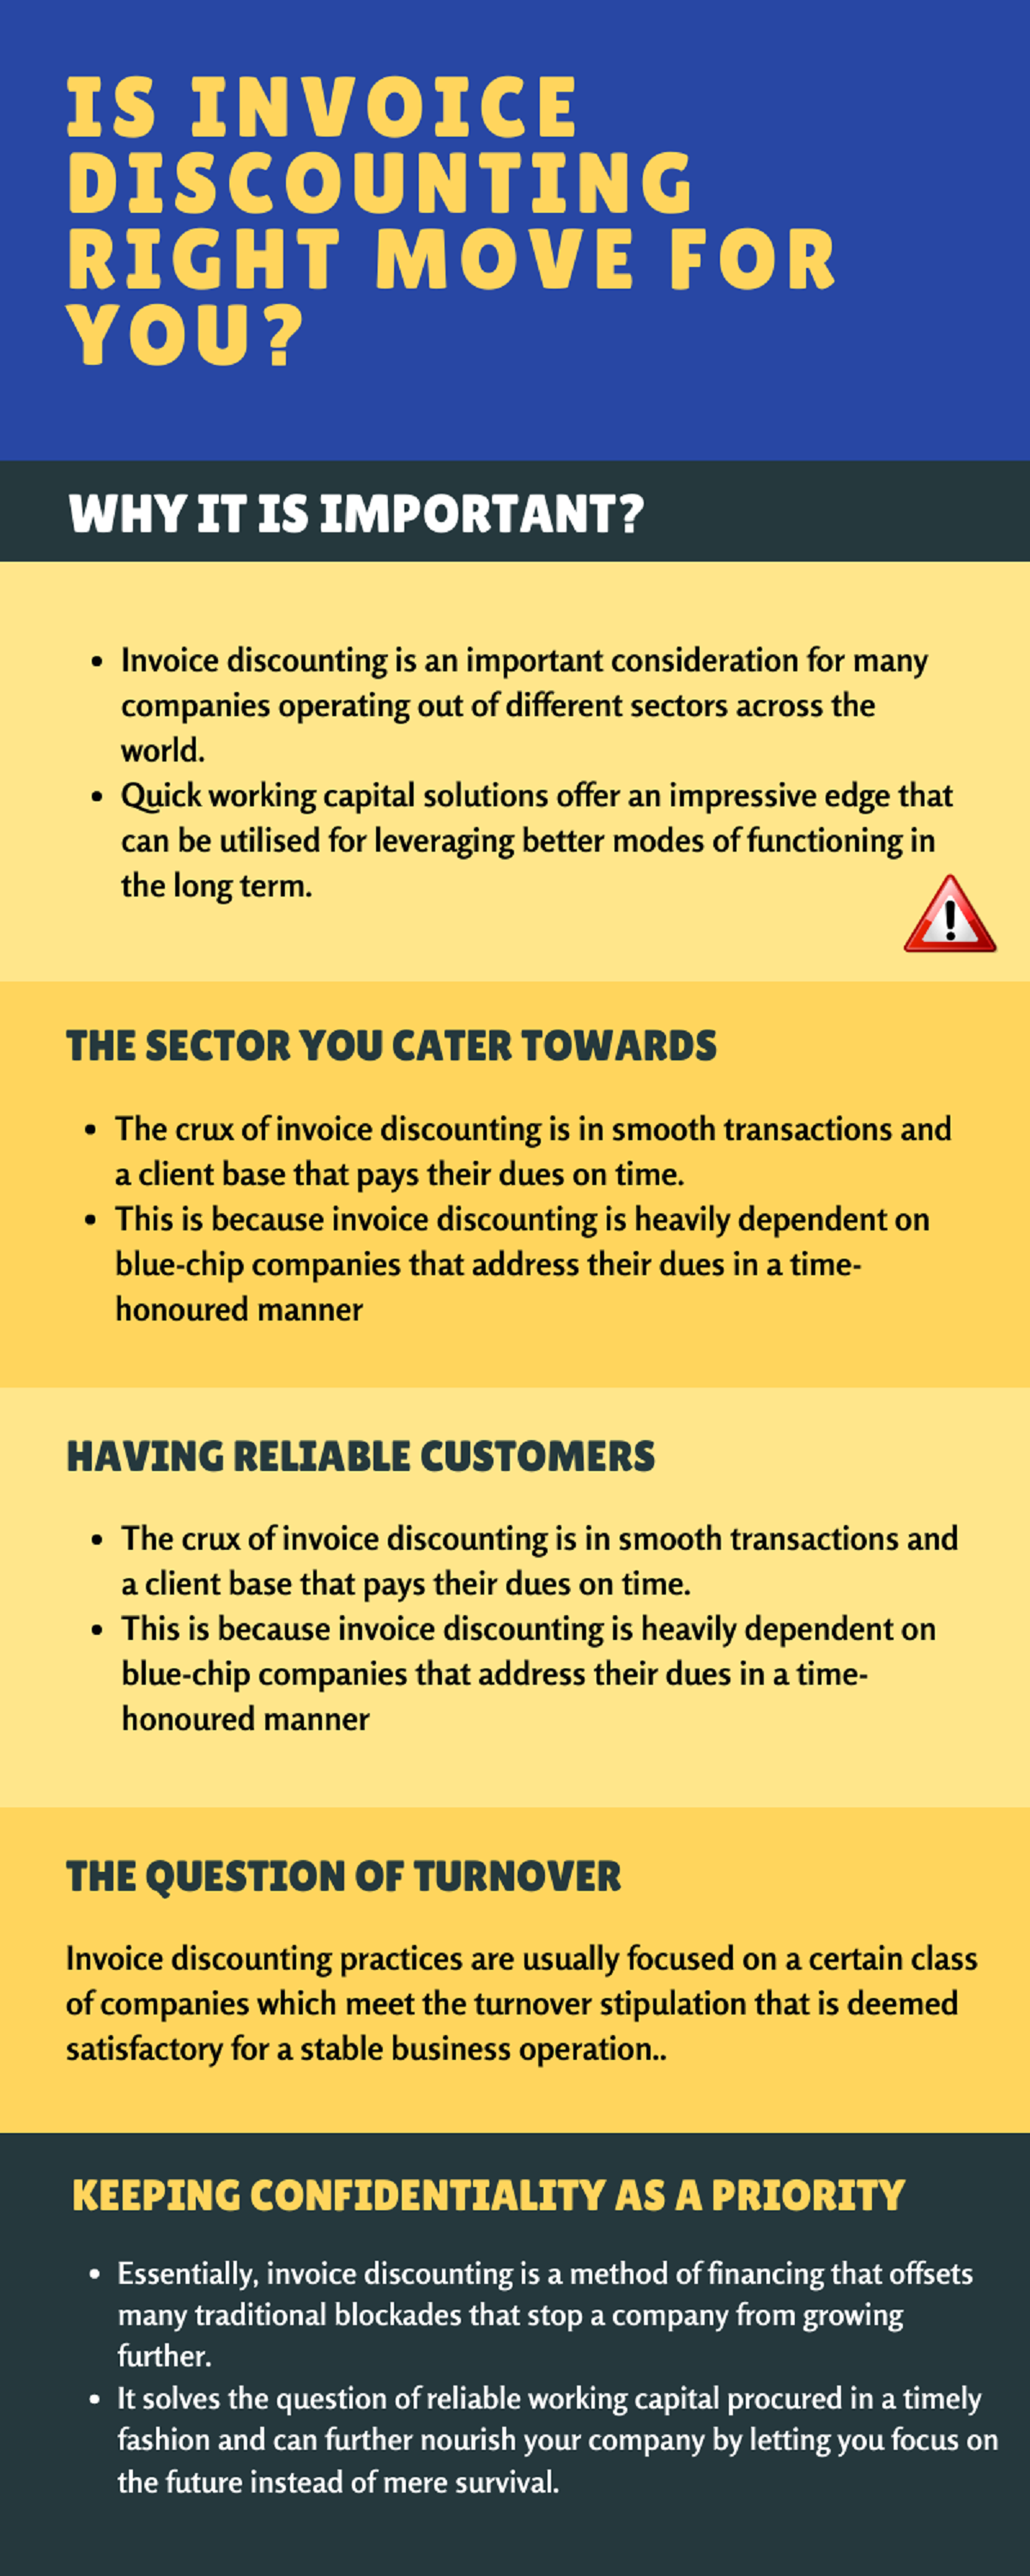 is-invoice-discounting-the-right-move-for-your-business-infographic